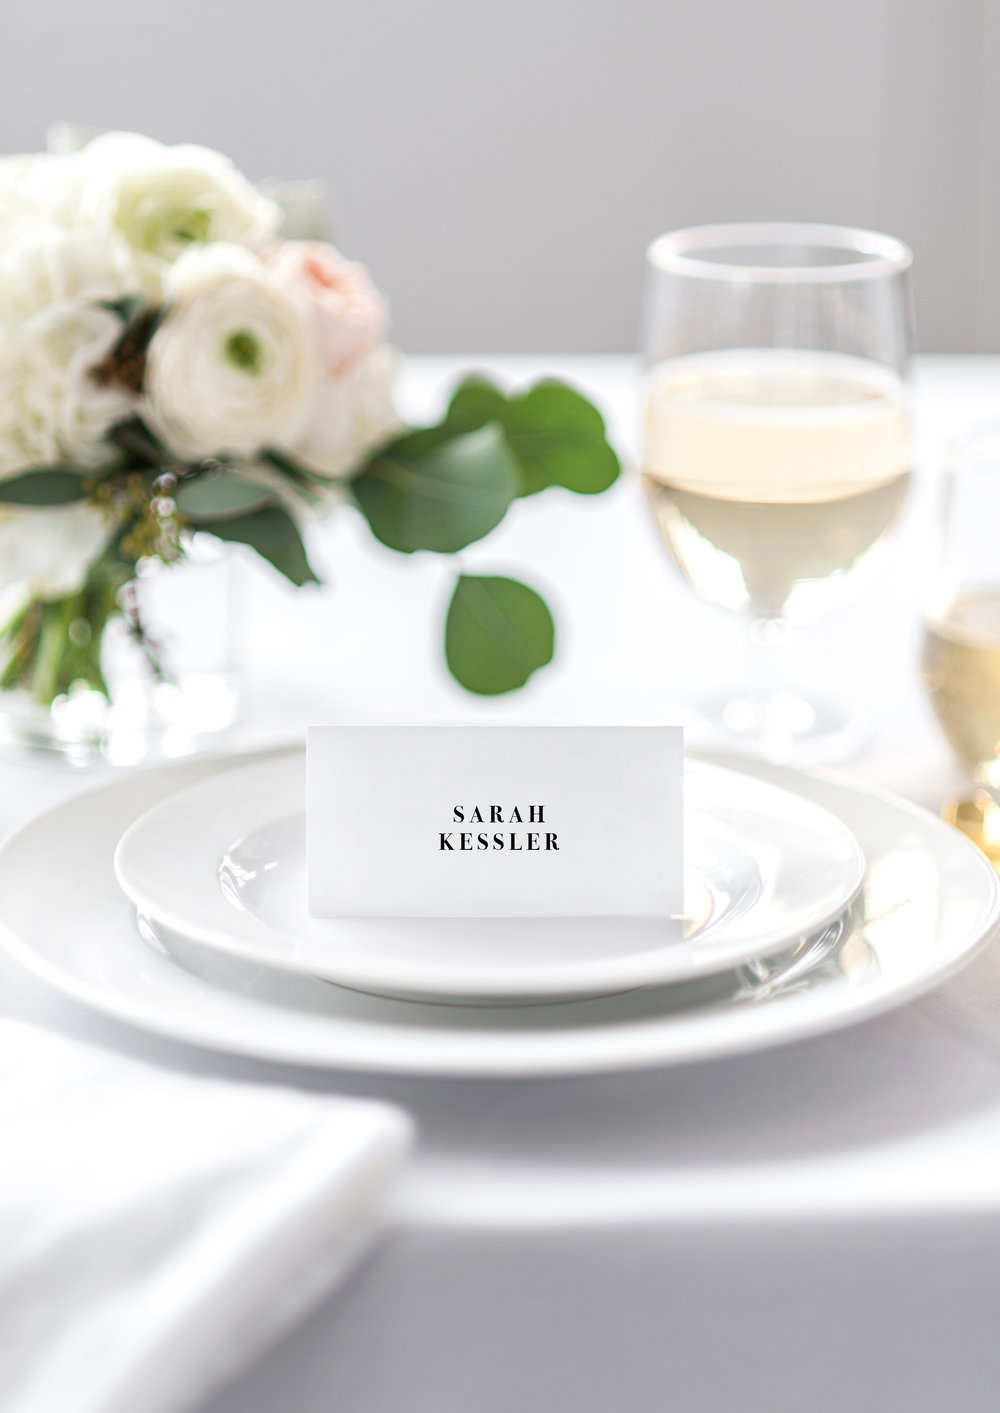 Allison and Sam modern classic wedding place cards